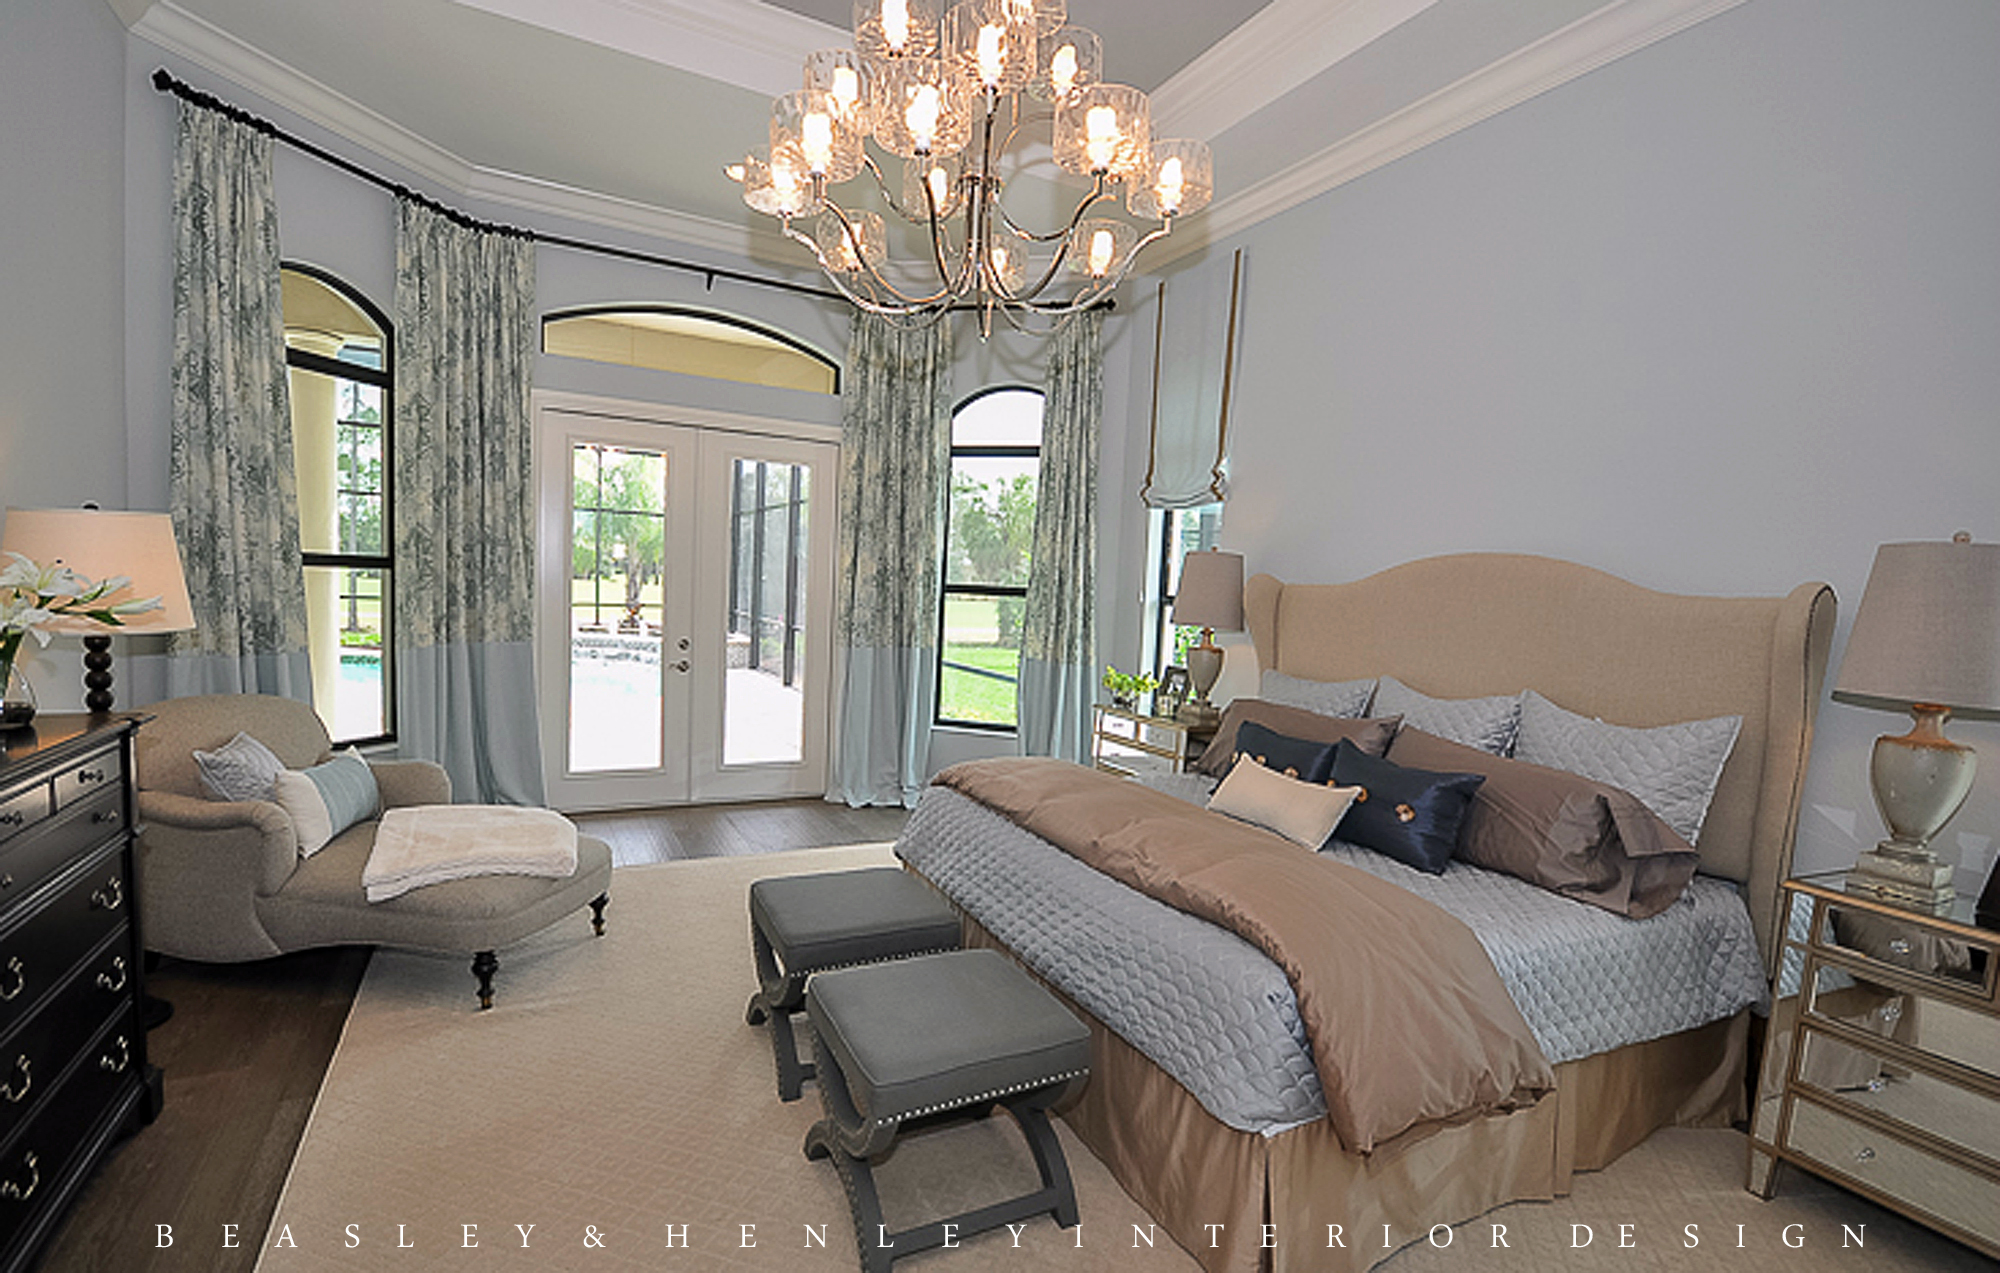 Beasley Henley Interior Design Captures Luxury Home Buyer With